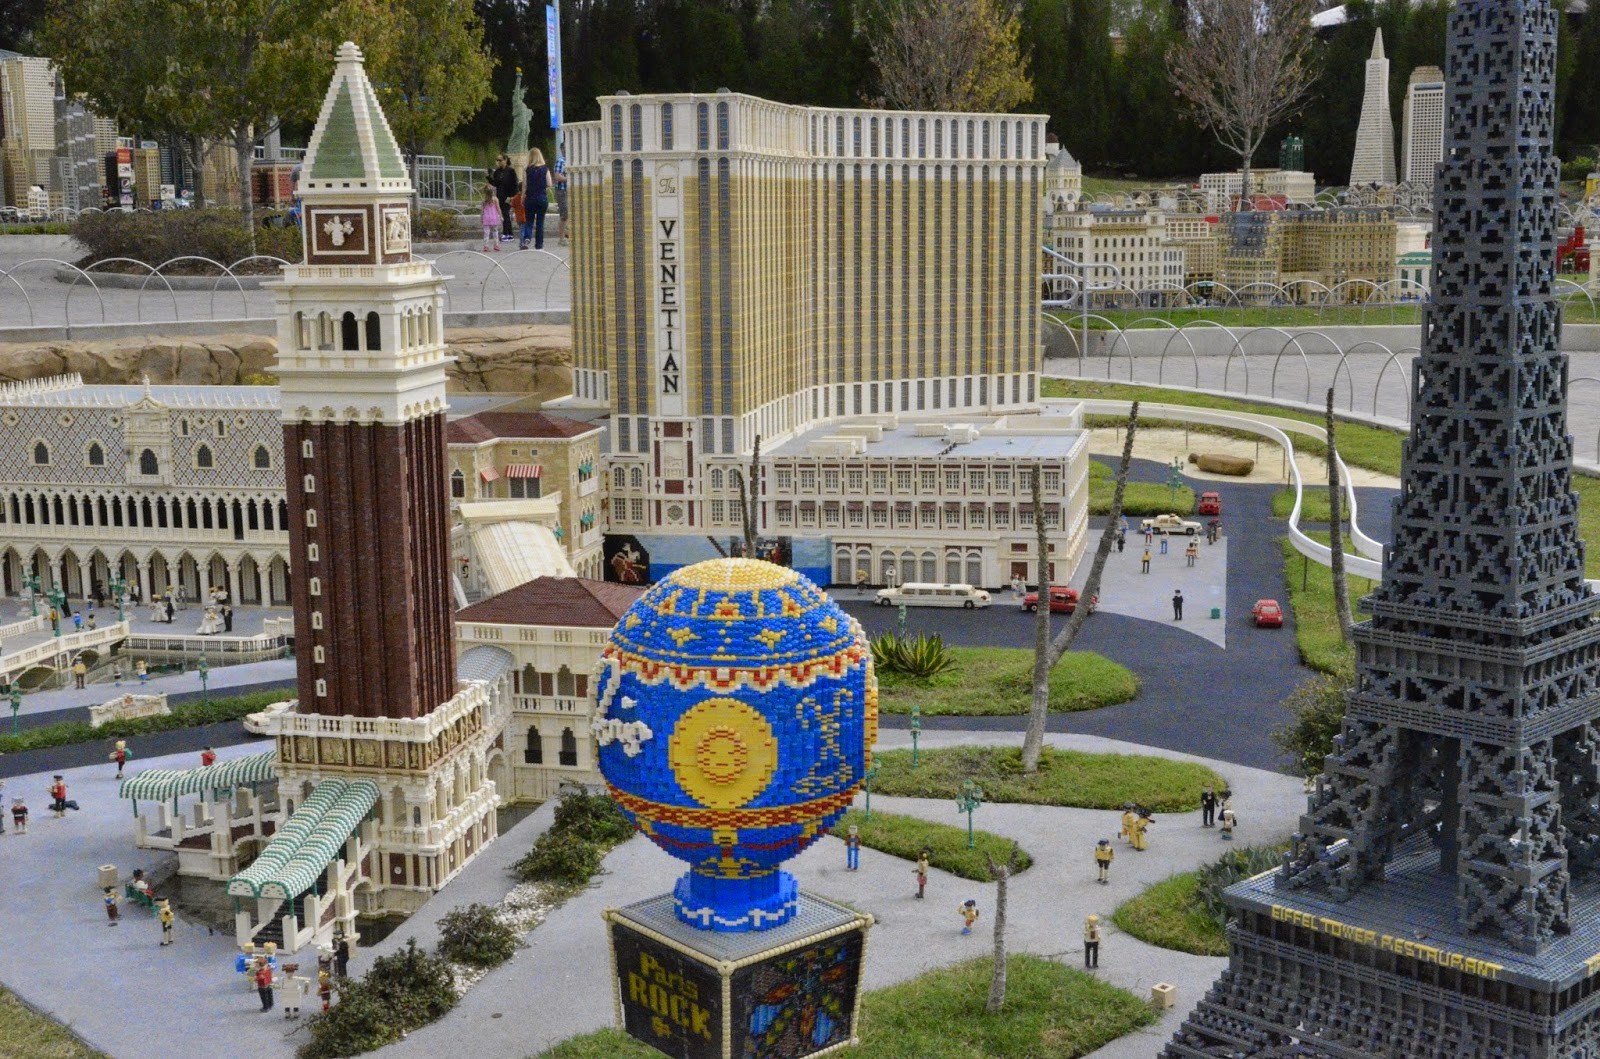 Off season is the best time to visit Legoland! #travel #legoland